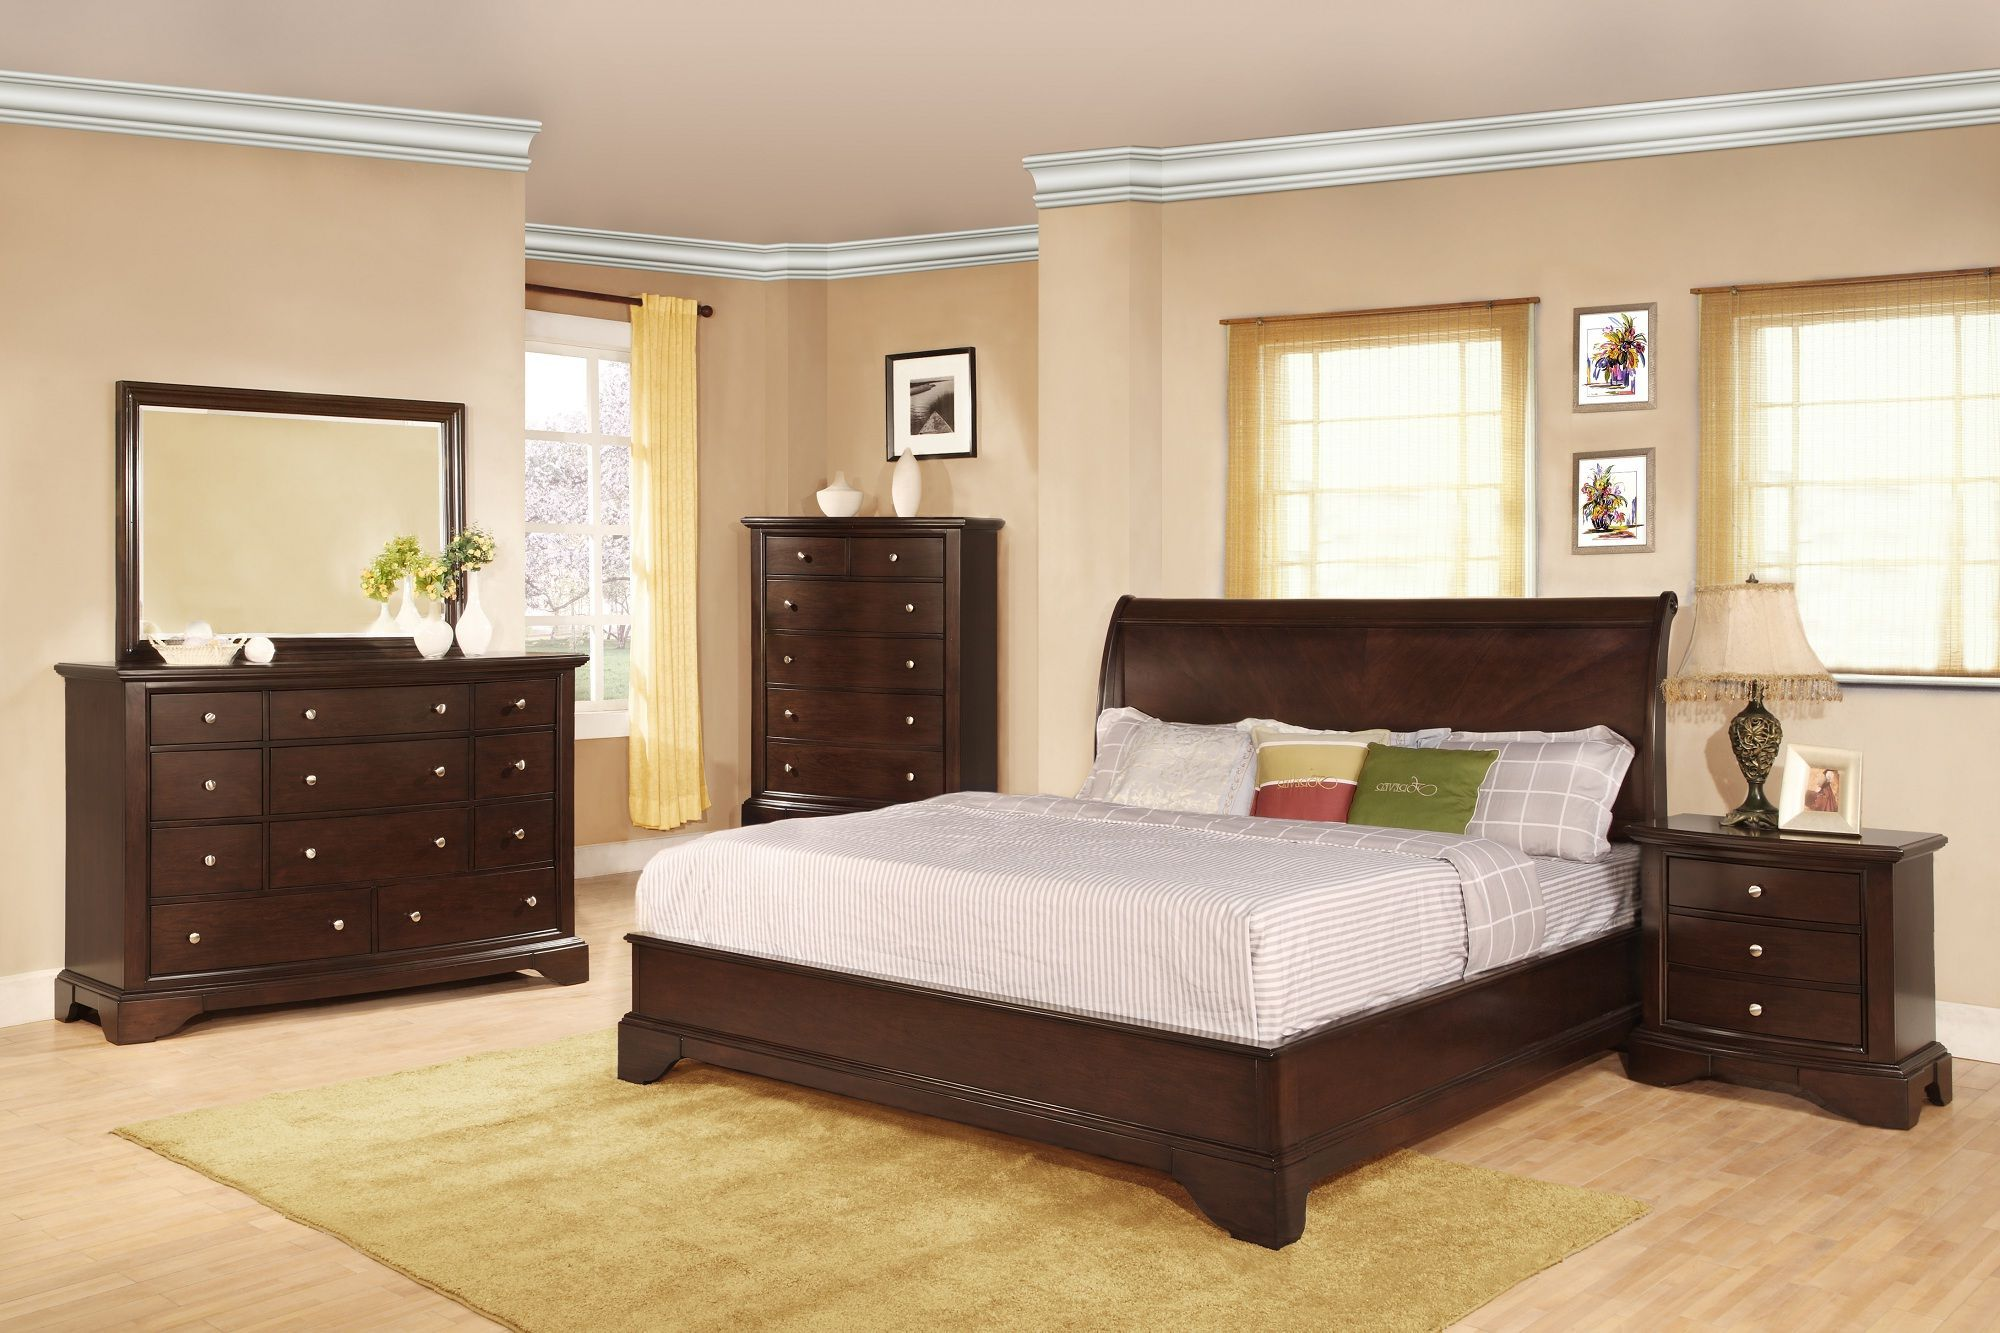 Bedroom Set At Costco Costco Bedroom Sets Best Home Design 2019 By